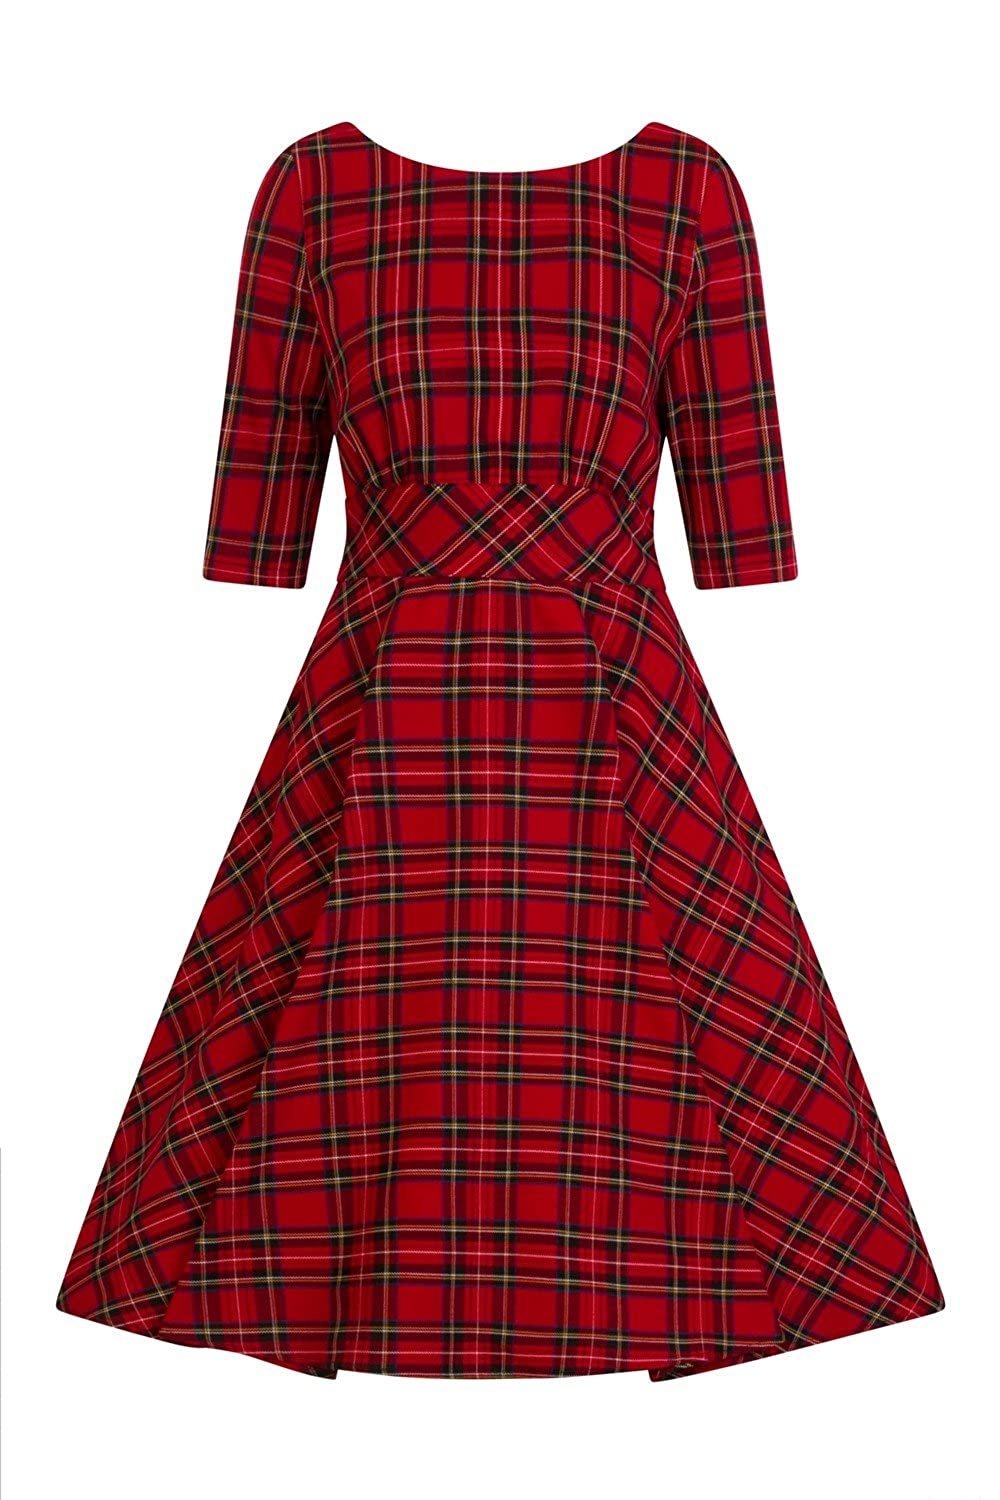 1940s Fashion Advice for Tall Women Hell Bunny Irvine Tartan 1950s Vintage Retro Dress XS-4XL $72.99 AT vintagedancer.com